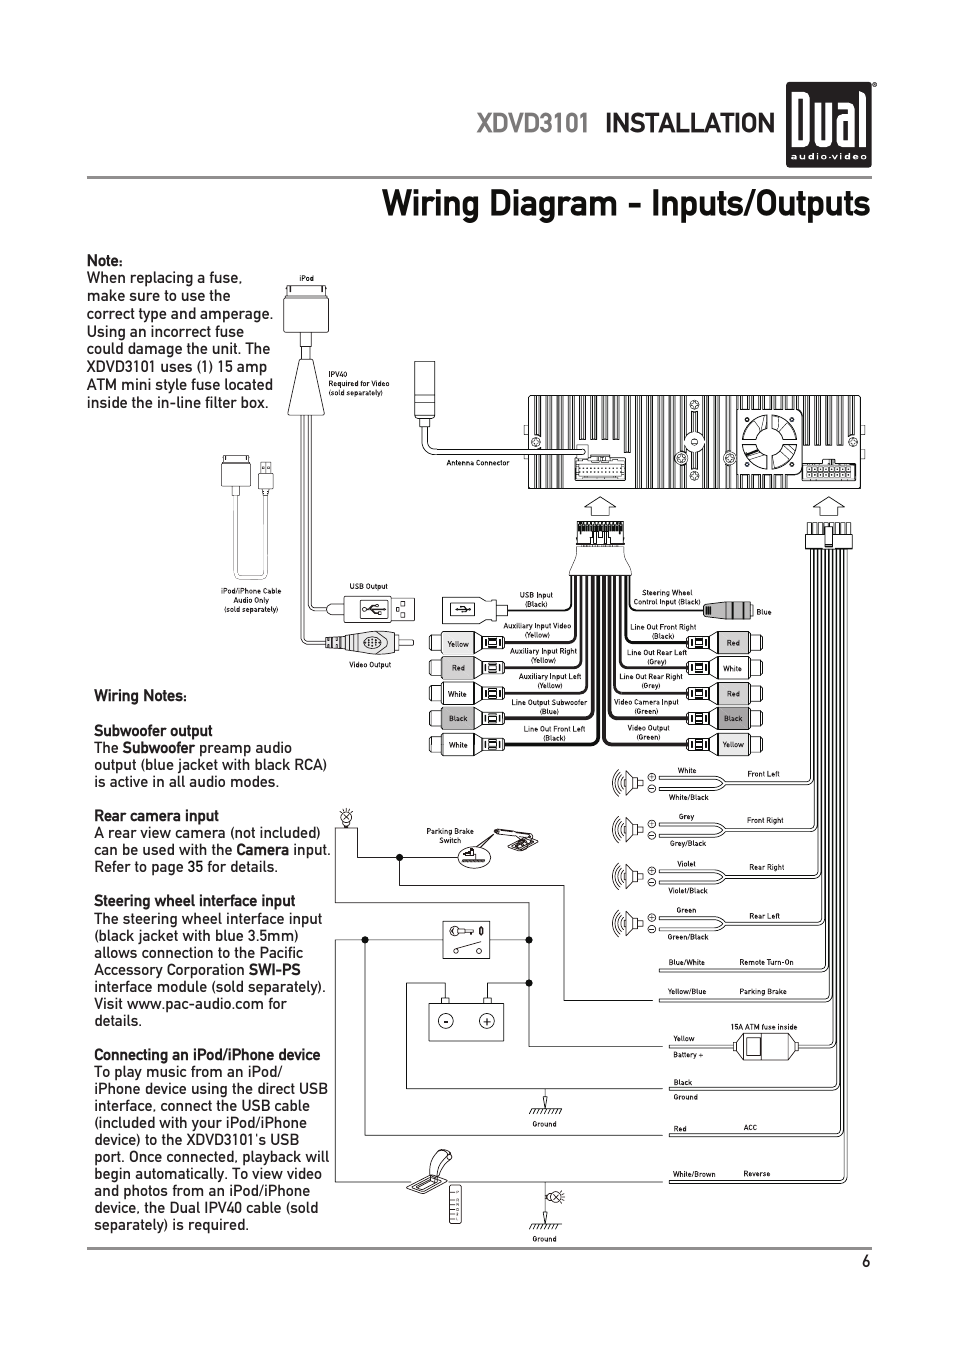 Ipod Usb Cable Wiring Diagram - Wiki Share